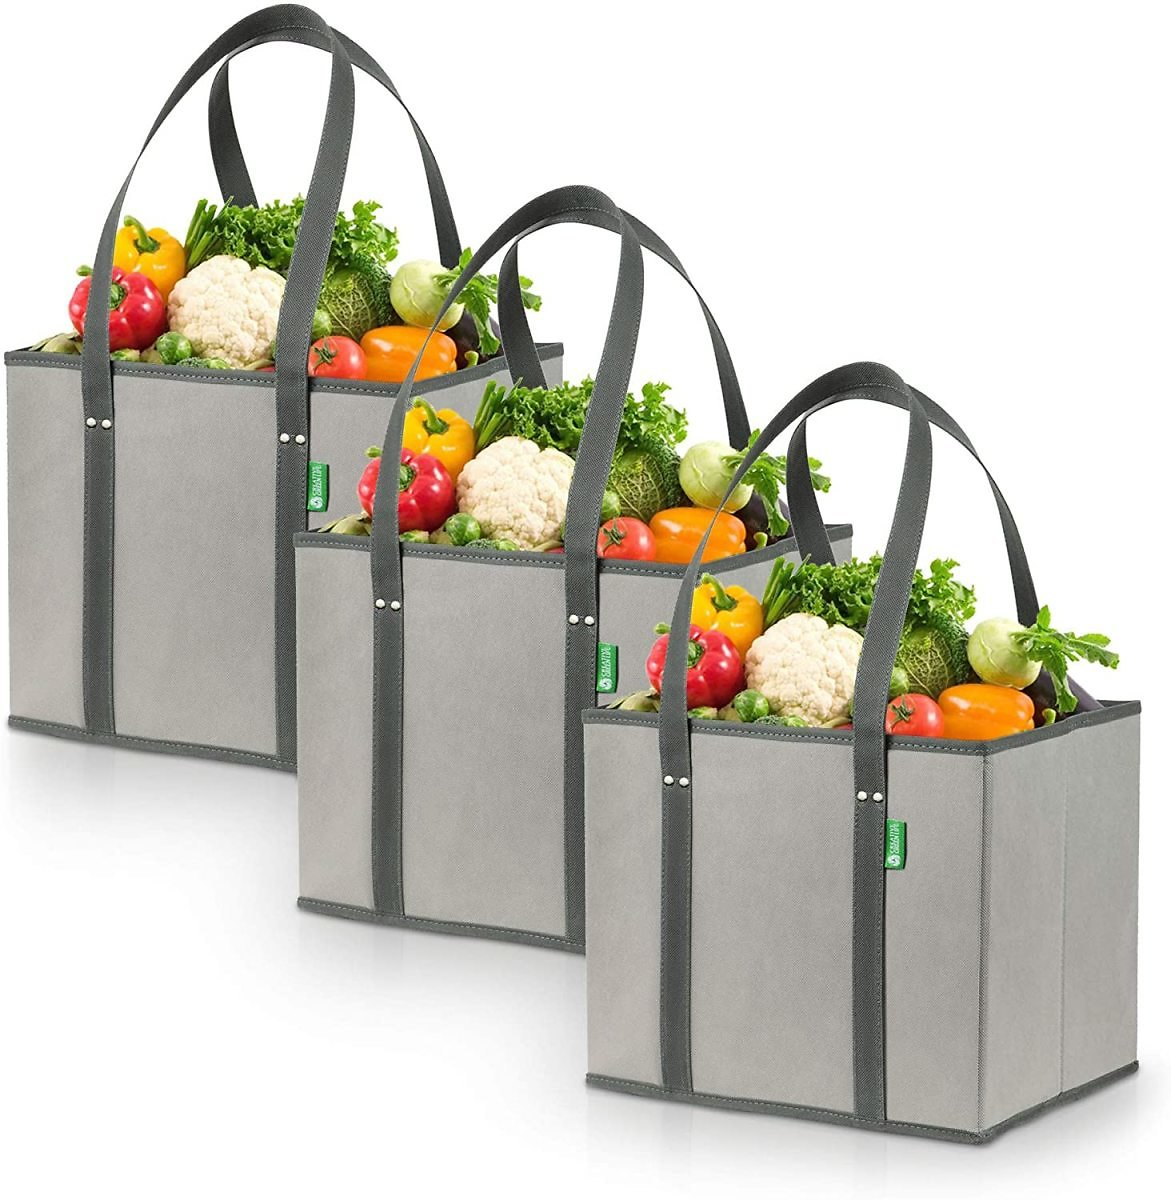 3-Pack Reusable Grocery Shopping Bags